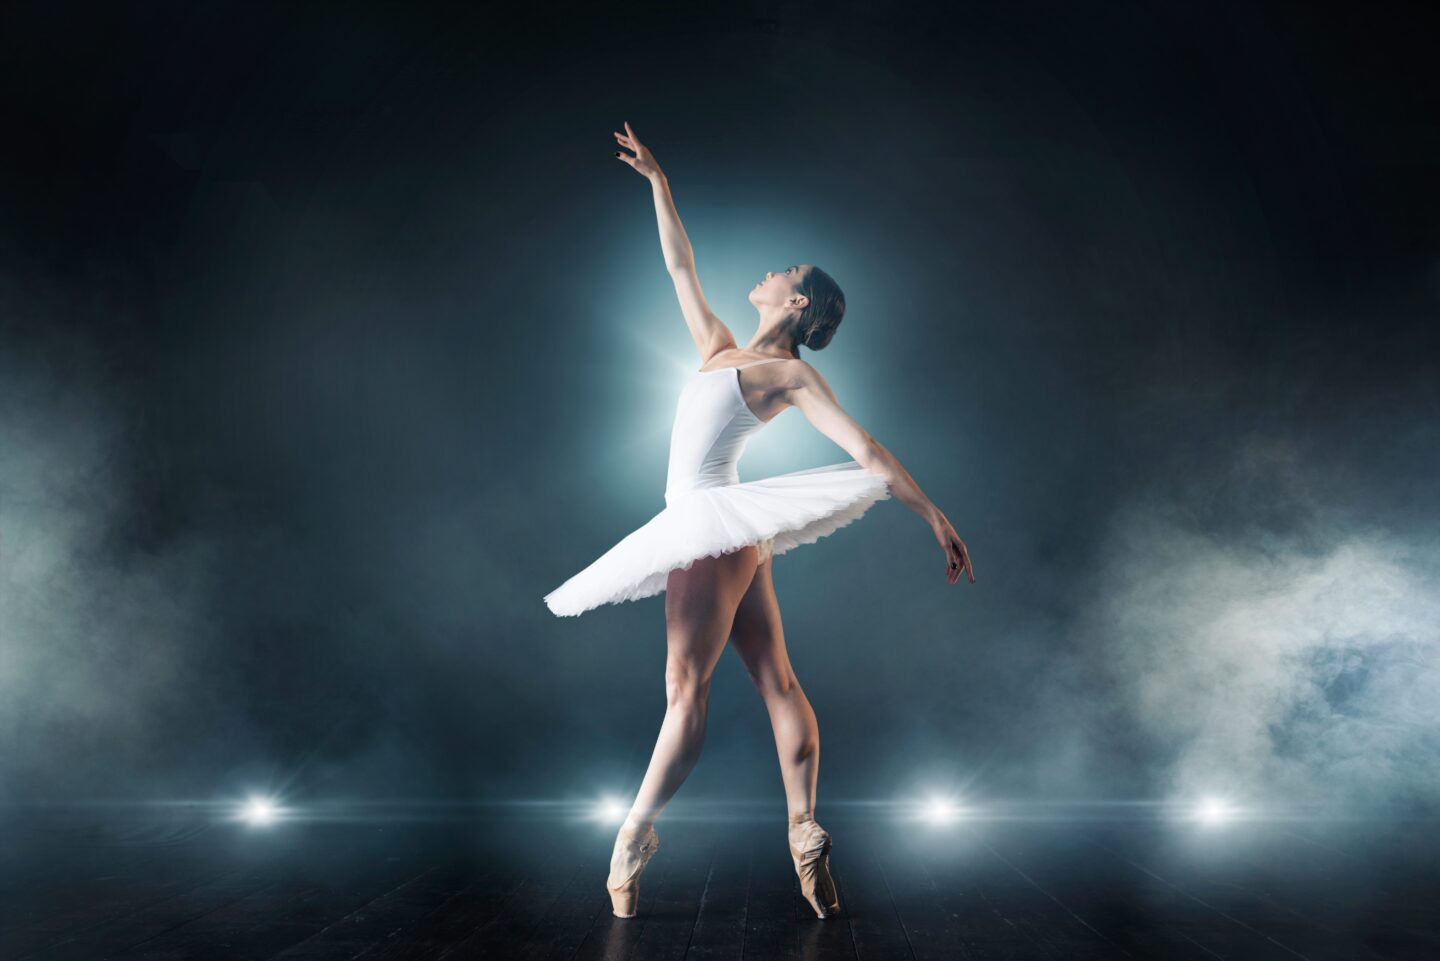 Ballet dancer in white dress dancing on the stage in theatre. Graceful ballerina training in class